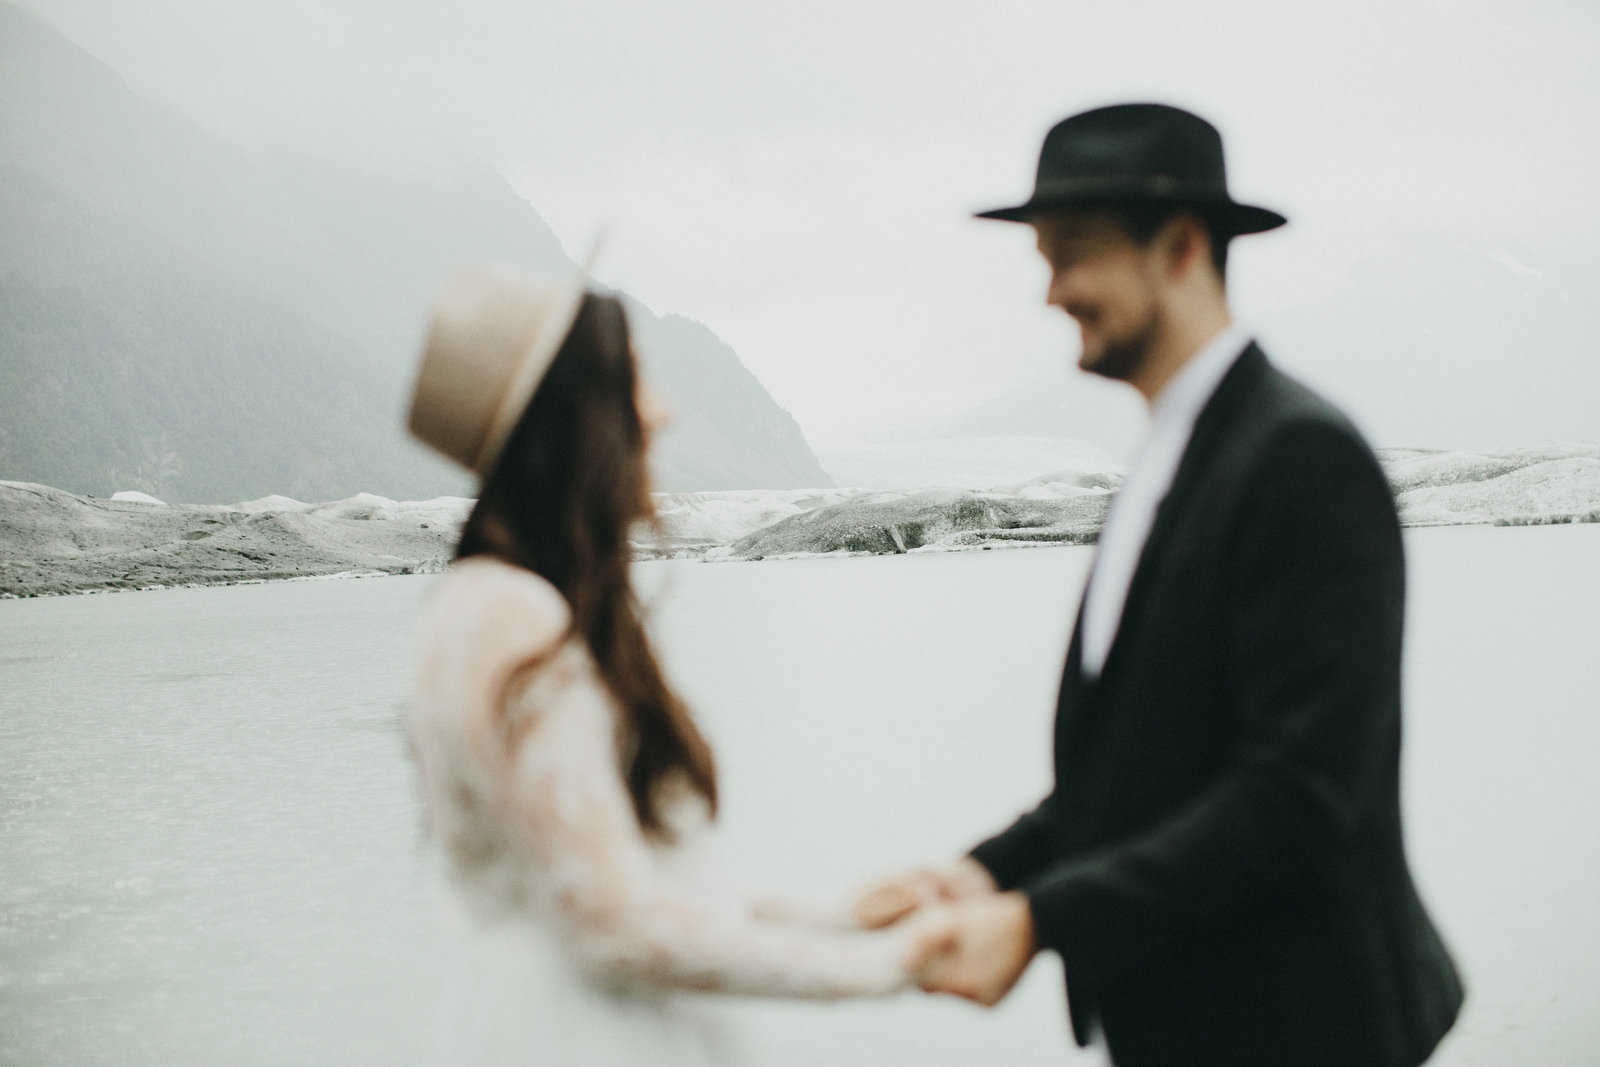 athena-and-camron-alaska-elopement-wedding-inspiration-india-earl-athena-grace-glacier-lagoon-wedding89